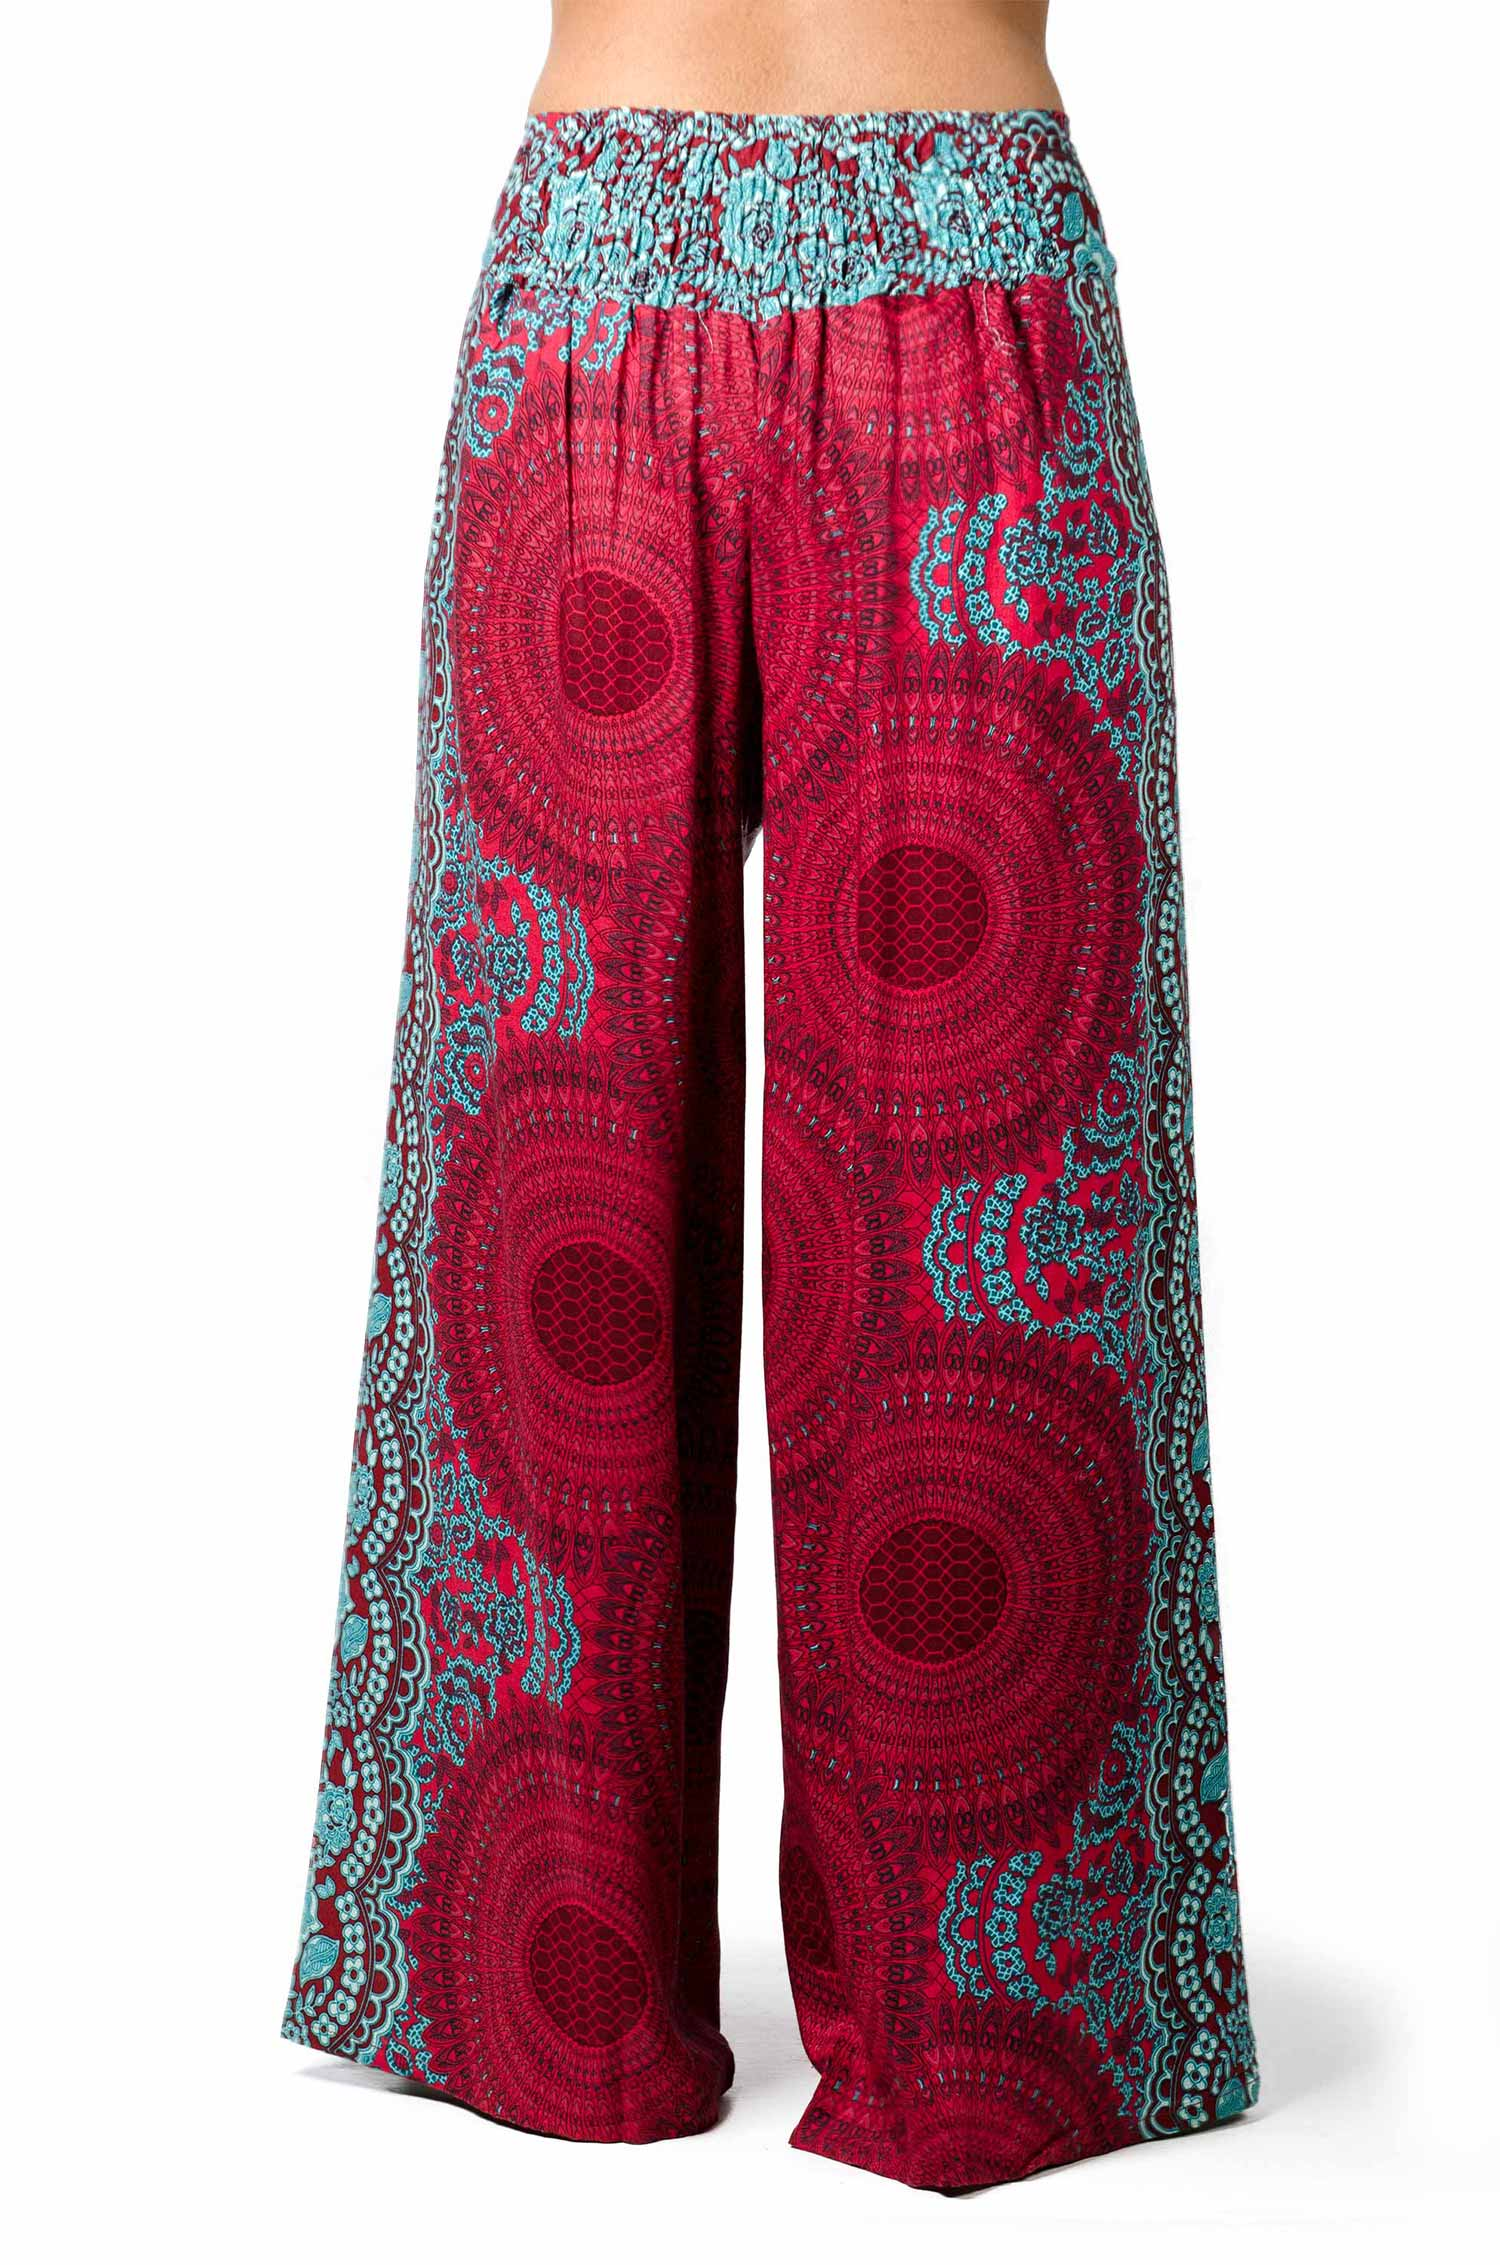 Wrap Leg Print Pants - Red